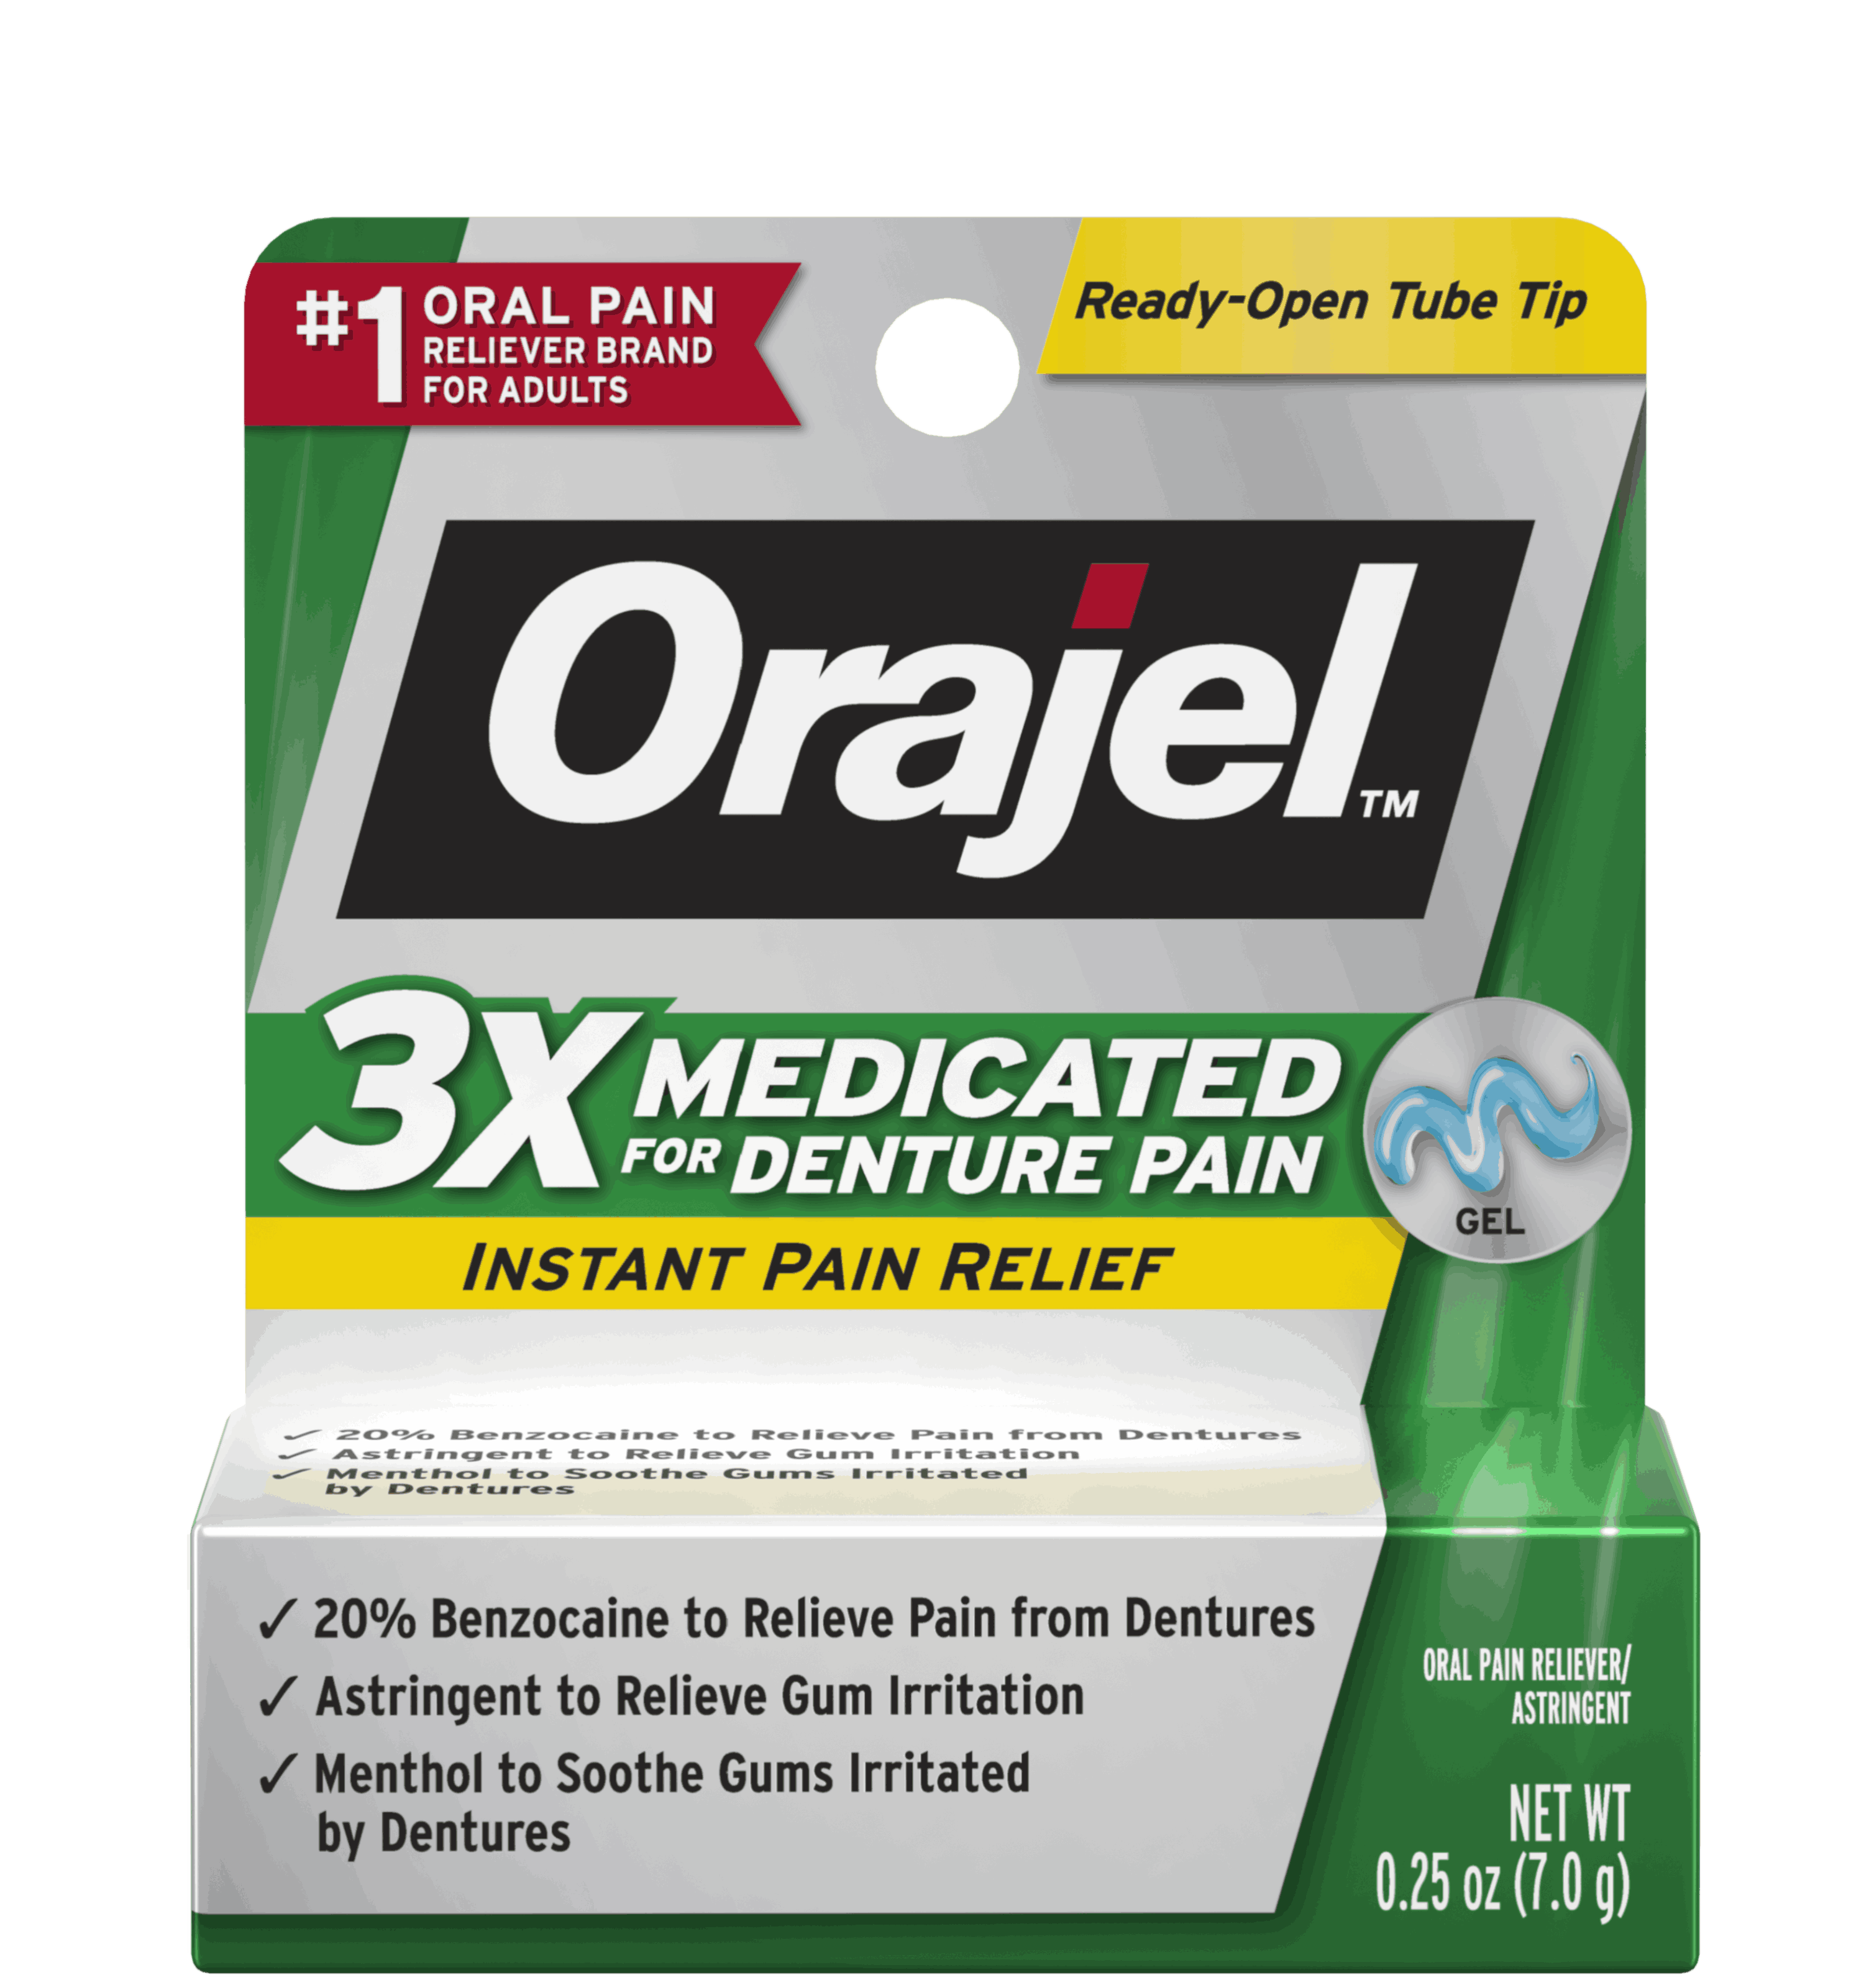 3X Medicated For Denture Pain Gel